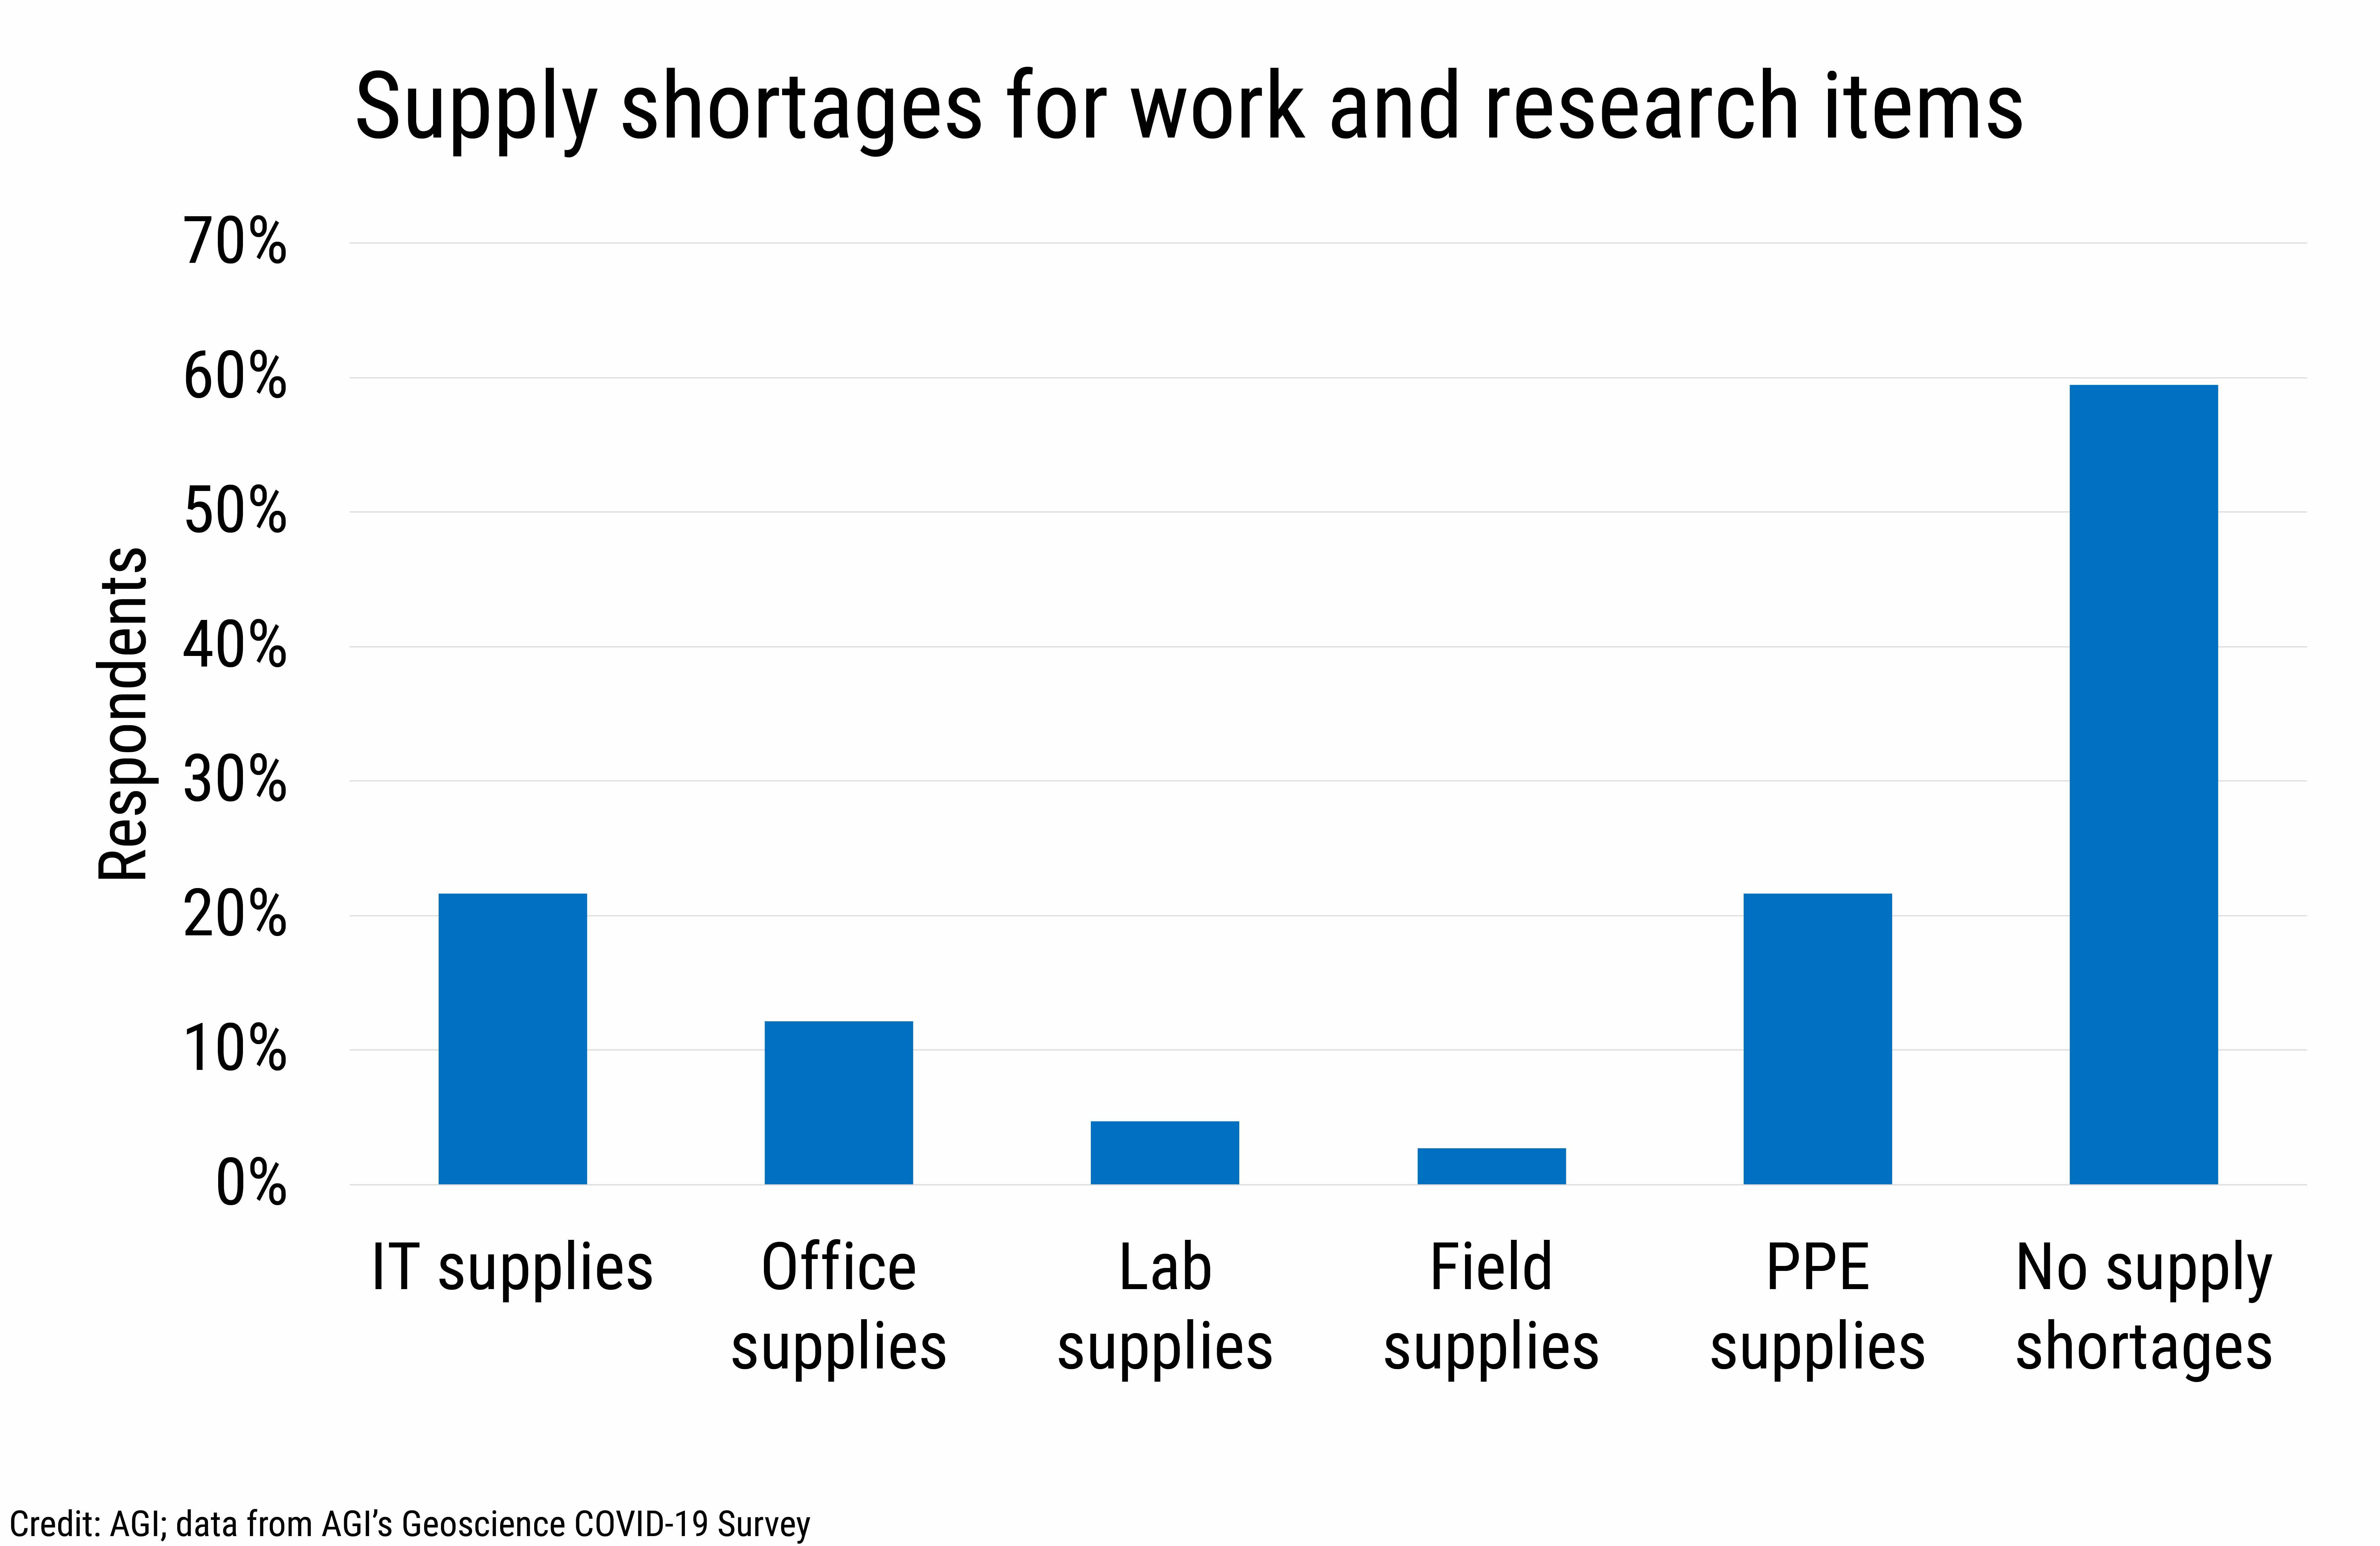 DB_2021-007 chart 03: Supply shortages for work and research items (Credit: AGI; data from AGI's Geoscience COVID-19 Survey)